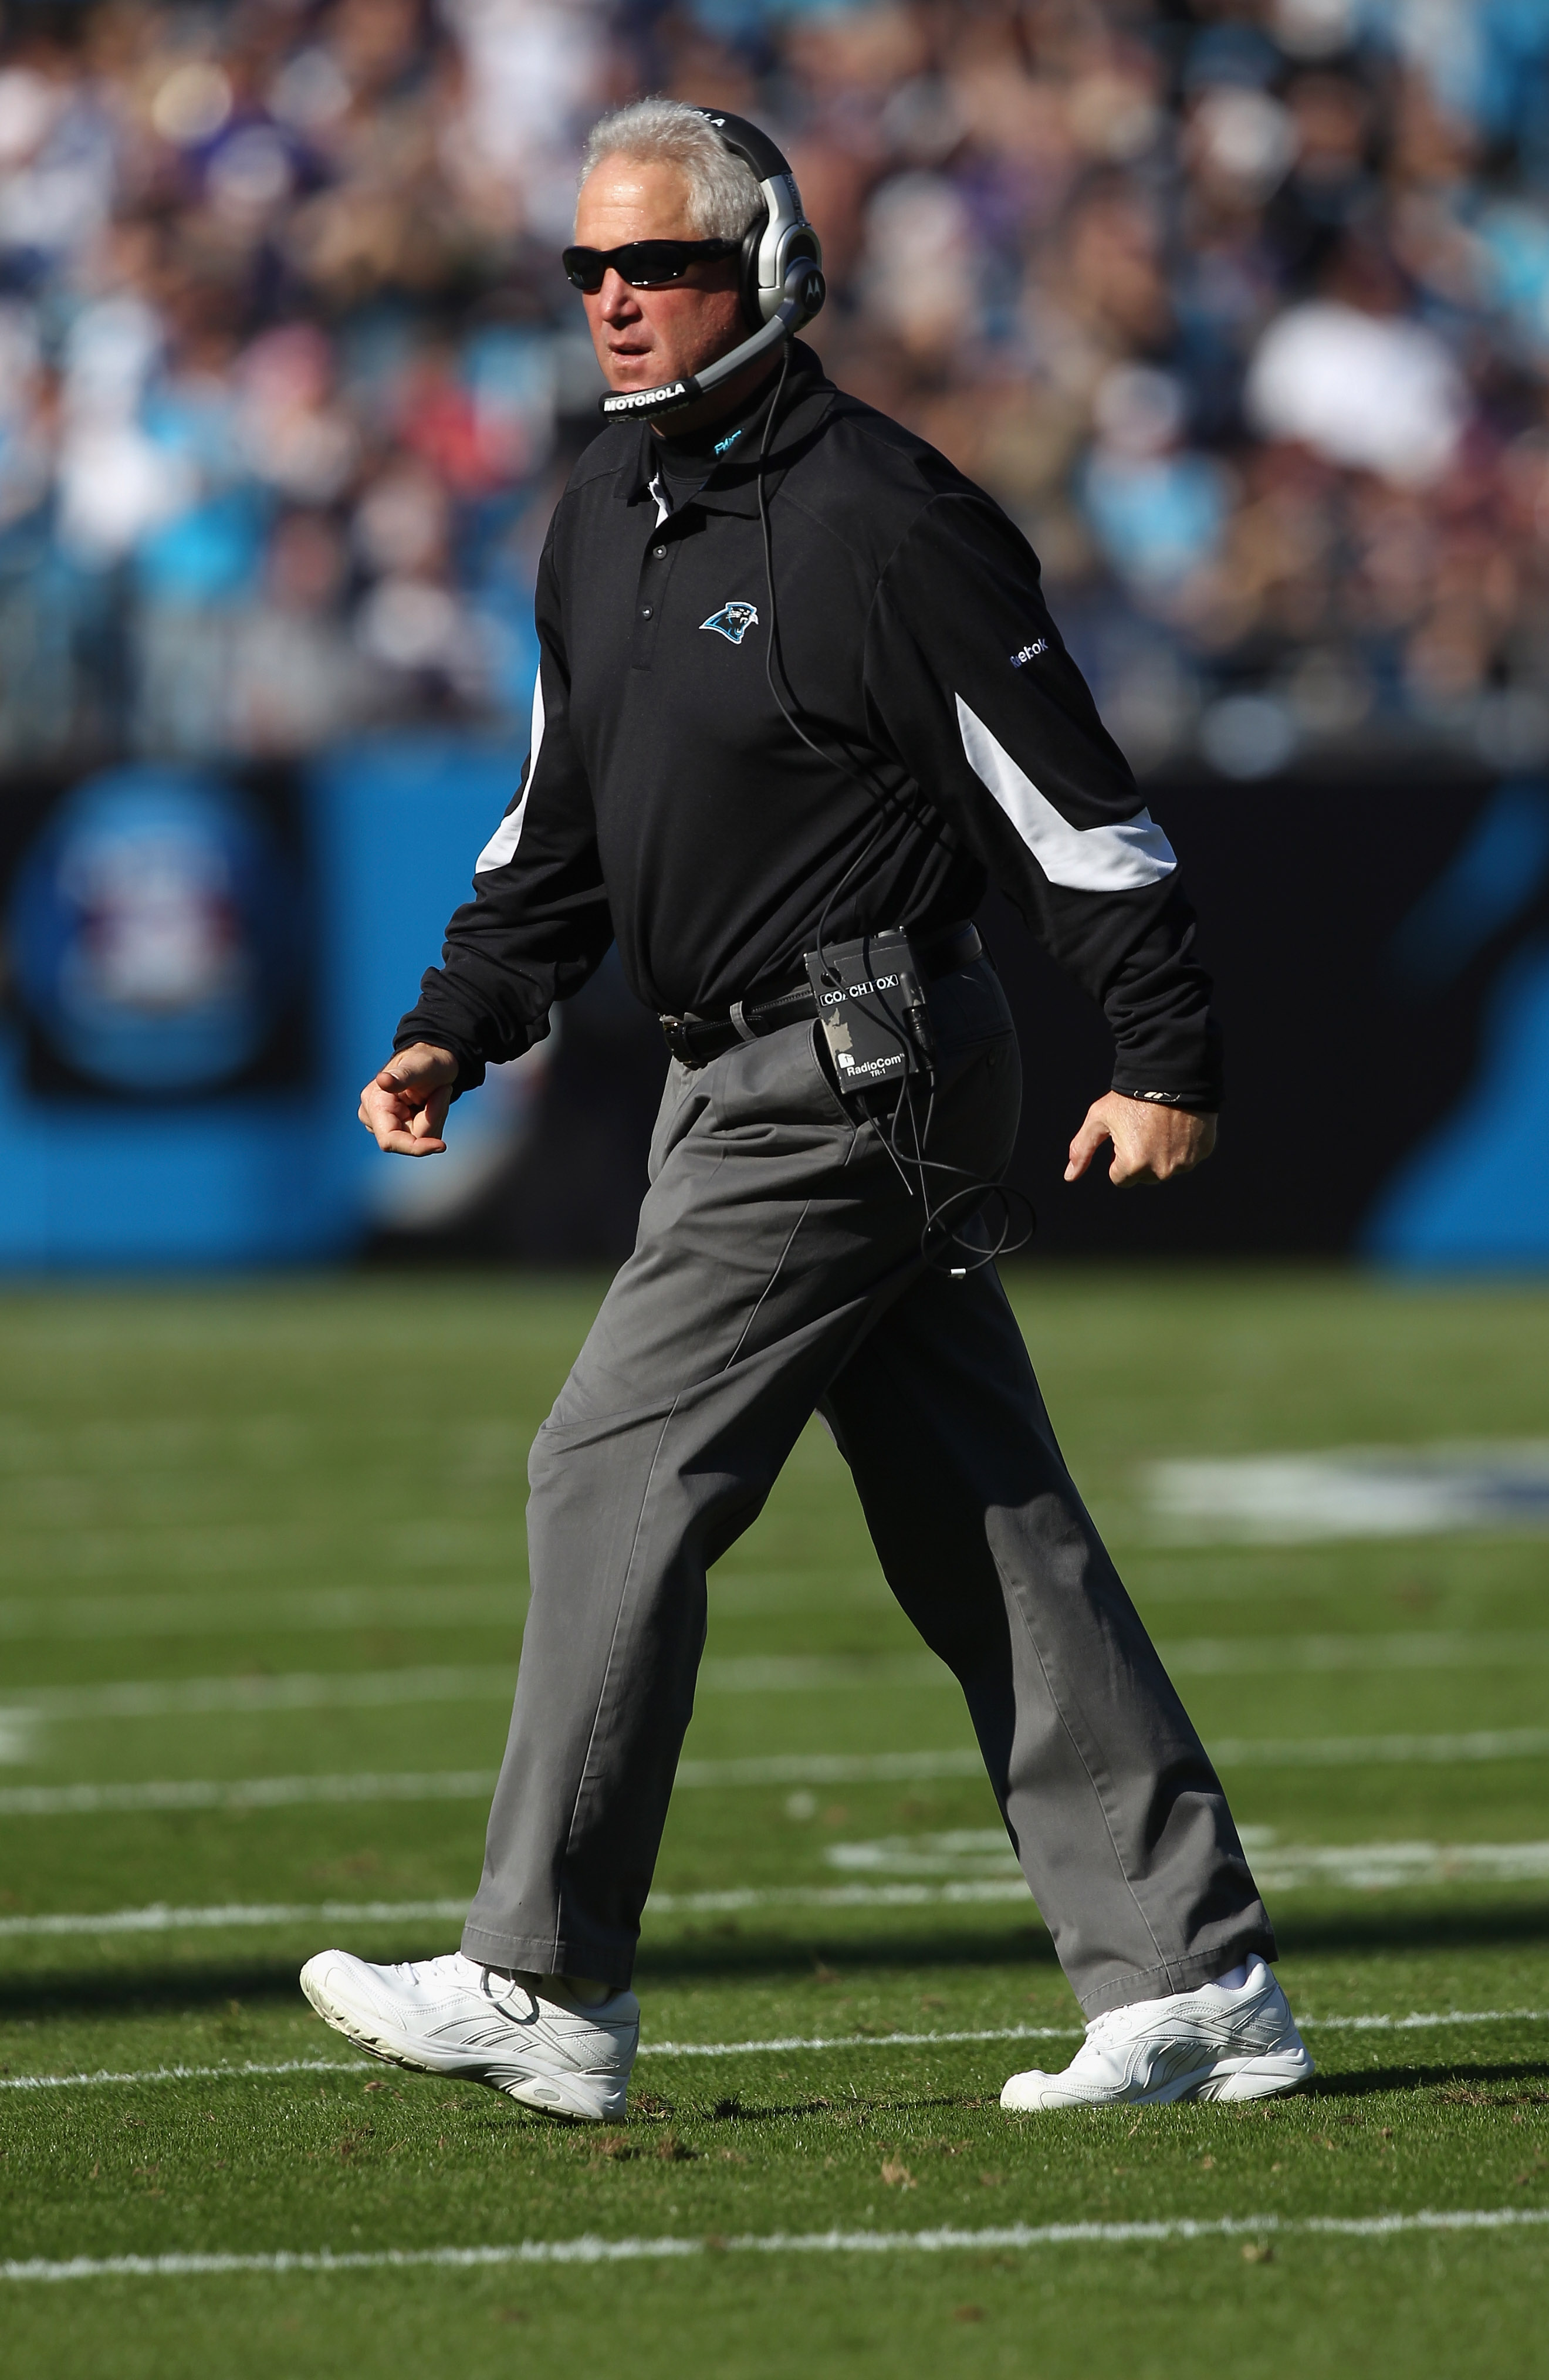 CHARLOTTE, NC - NOVEMBER 21:  Head coach John Fox of the Carolina Panthers walks off the field against the Baltimore Ravens at Bank of America Stadium on November 21, 2010 in Charlotte, North Carolina.  (Photo by Streeter Lecka/Getty Images)